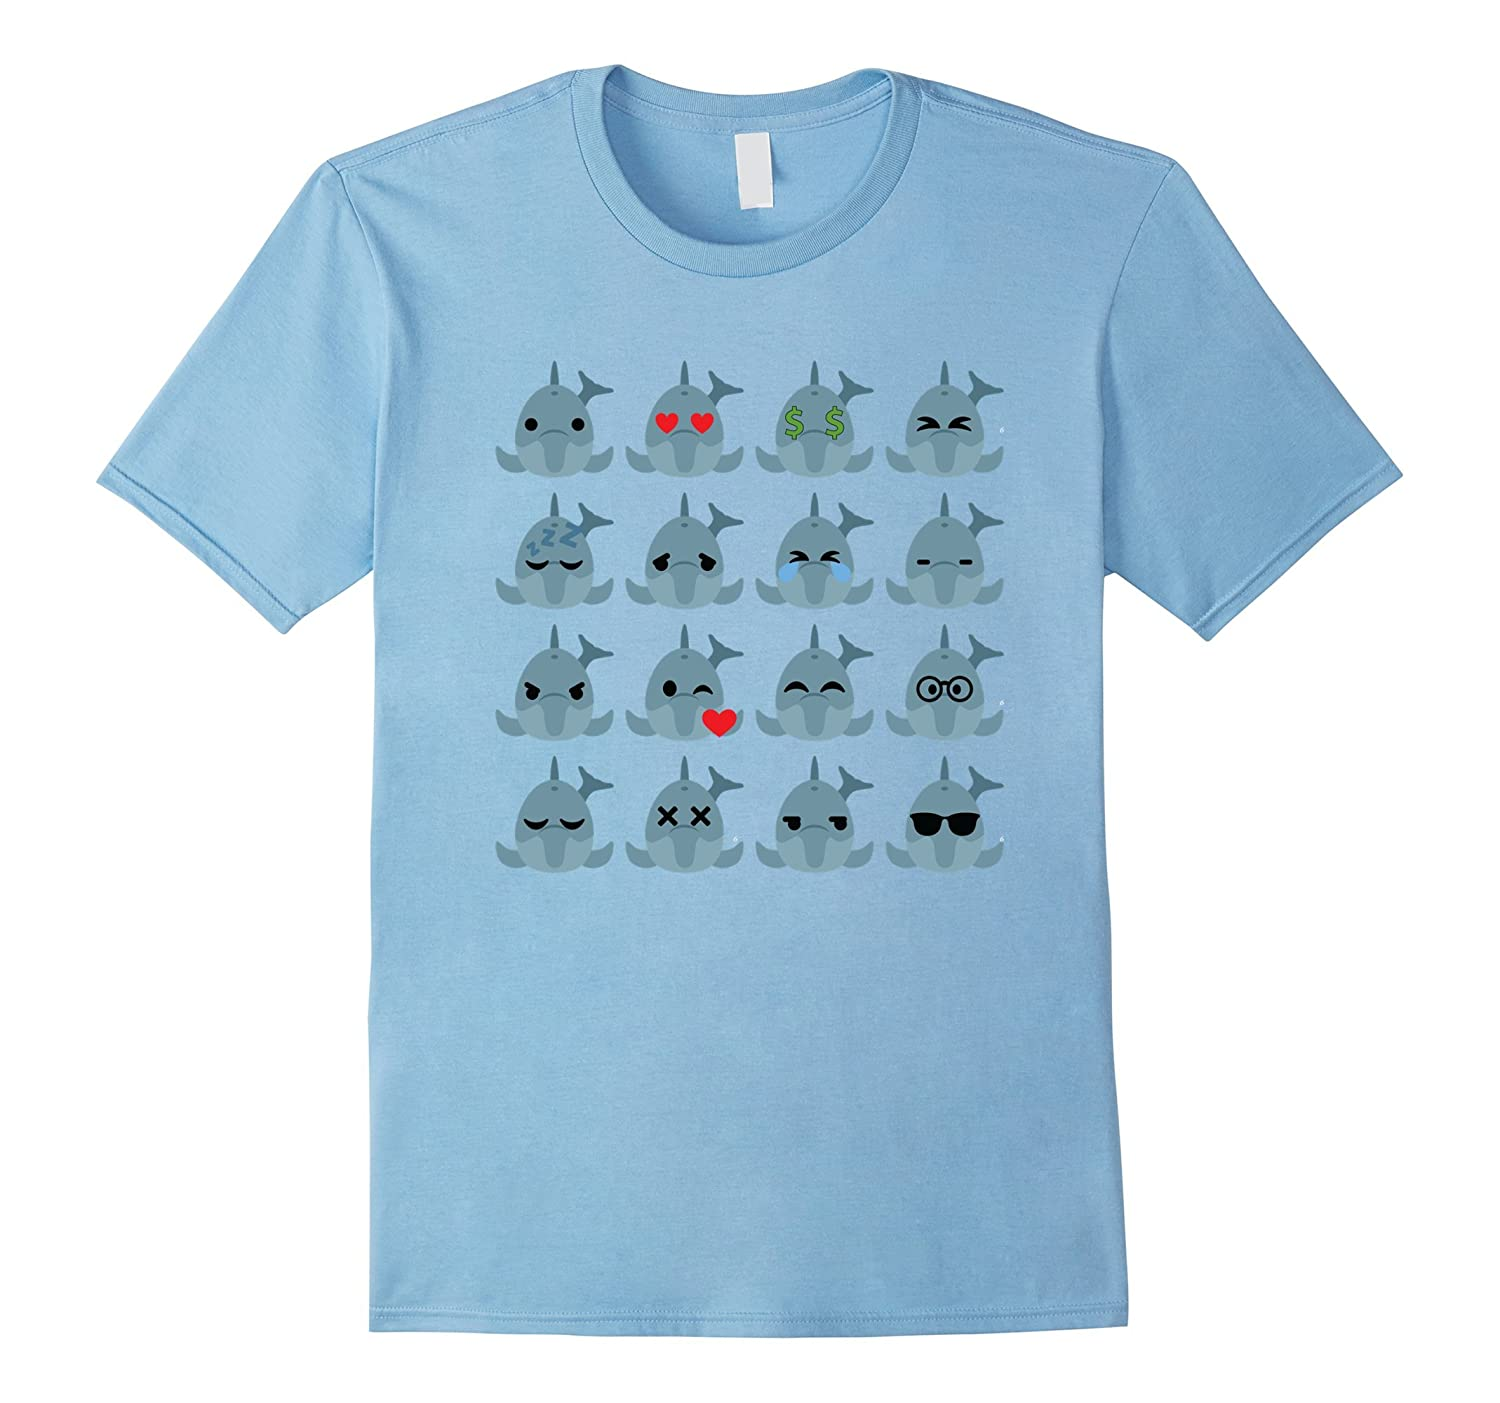 Dolphin Emoji Many Different Face Emotion Shirt T-Shirt Tee-Vaci